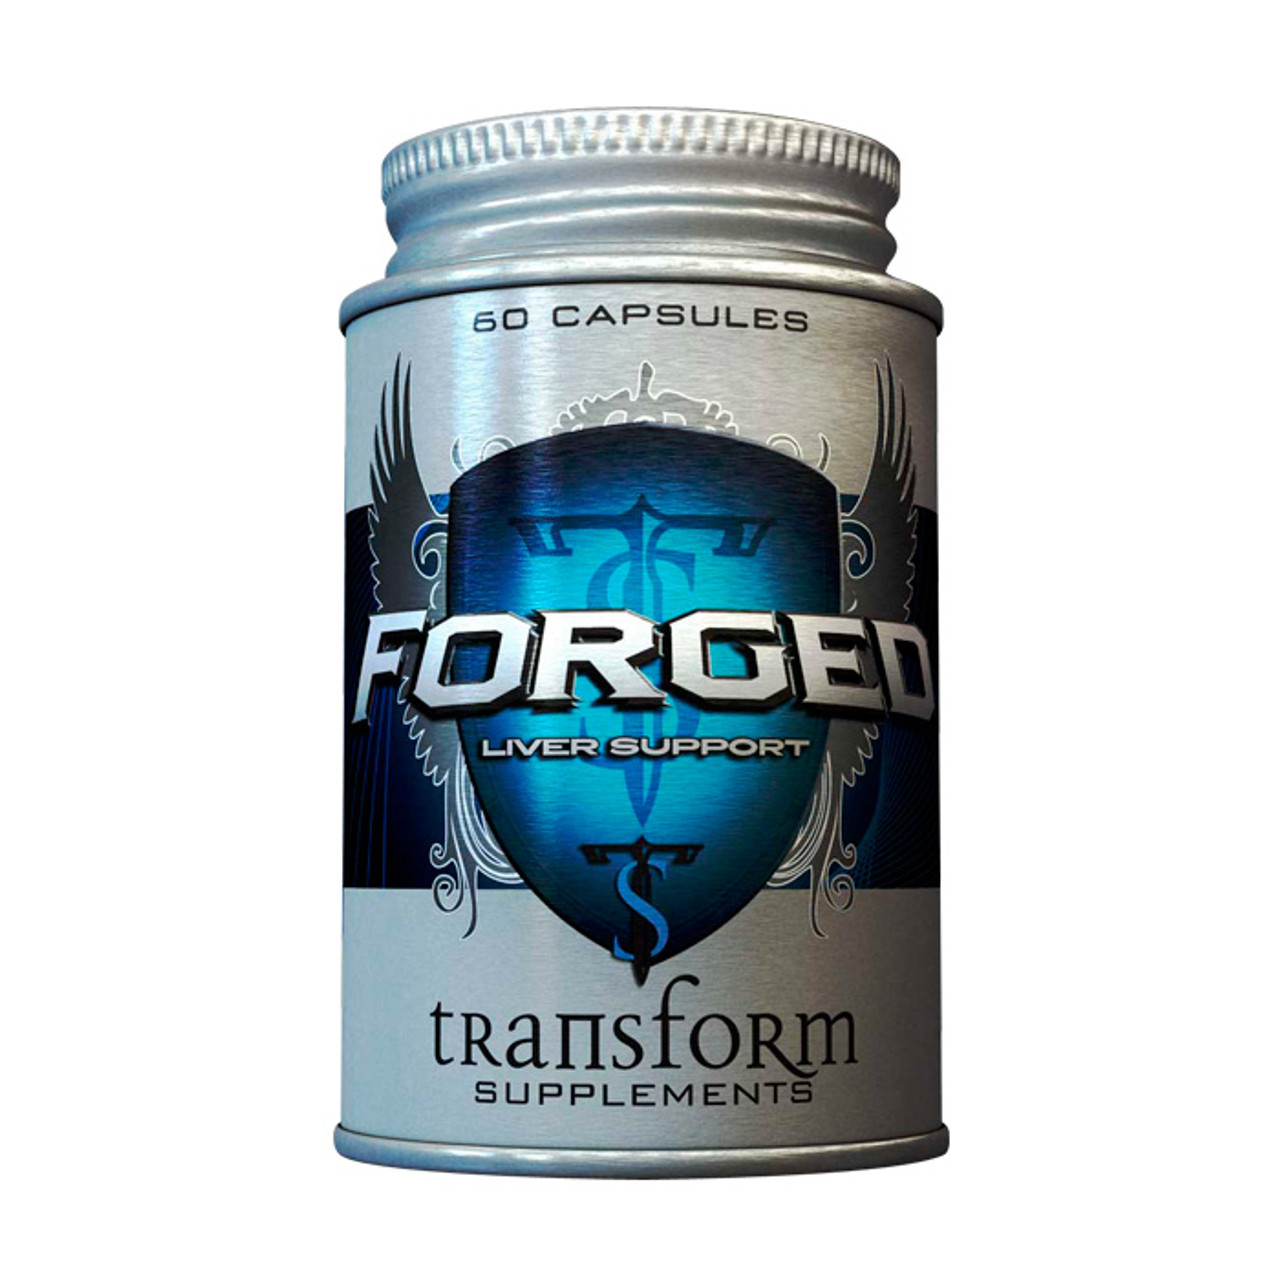 Forged Liver Support by Transform Supplements 60ct